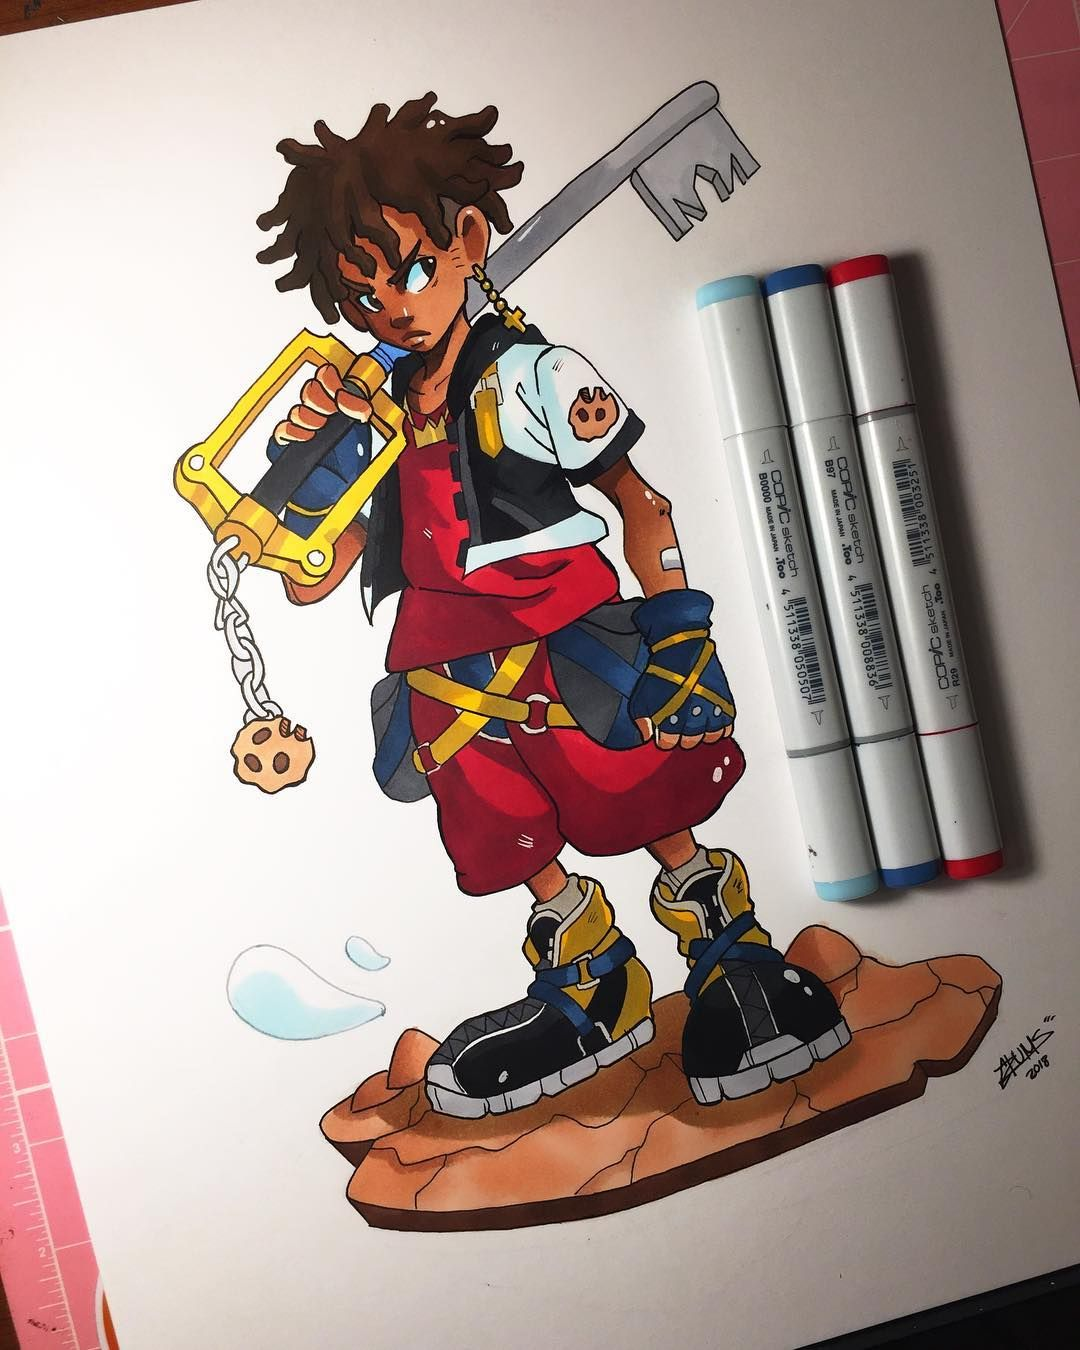 Kingdom Heart In A Alternate Universe Sora Has The Keyblade With The Cookie Hanging From It Finally Kingdom Hea Kingdom Hearts Character Design Black Artists